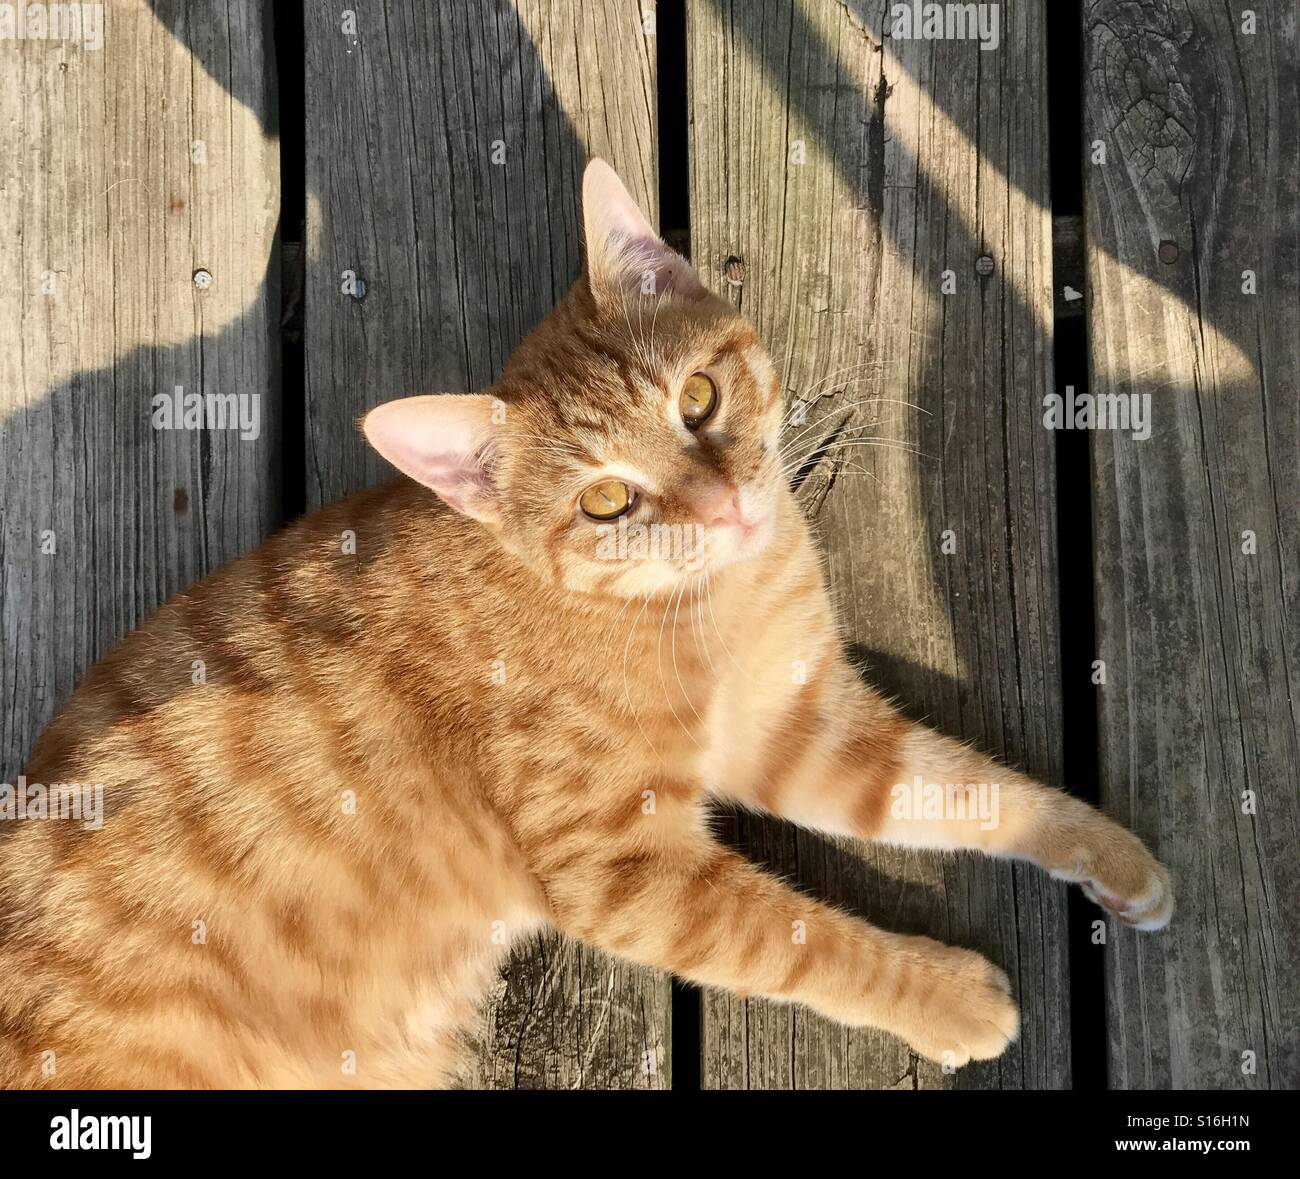 Orange Or Ginger Tabby Cat With Copper Eyes And Having Warm Fuzzies Stock Photo Alamy